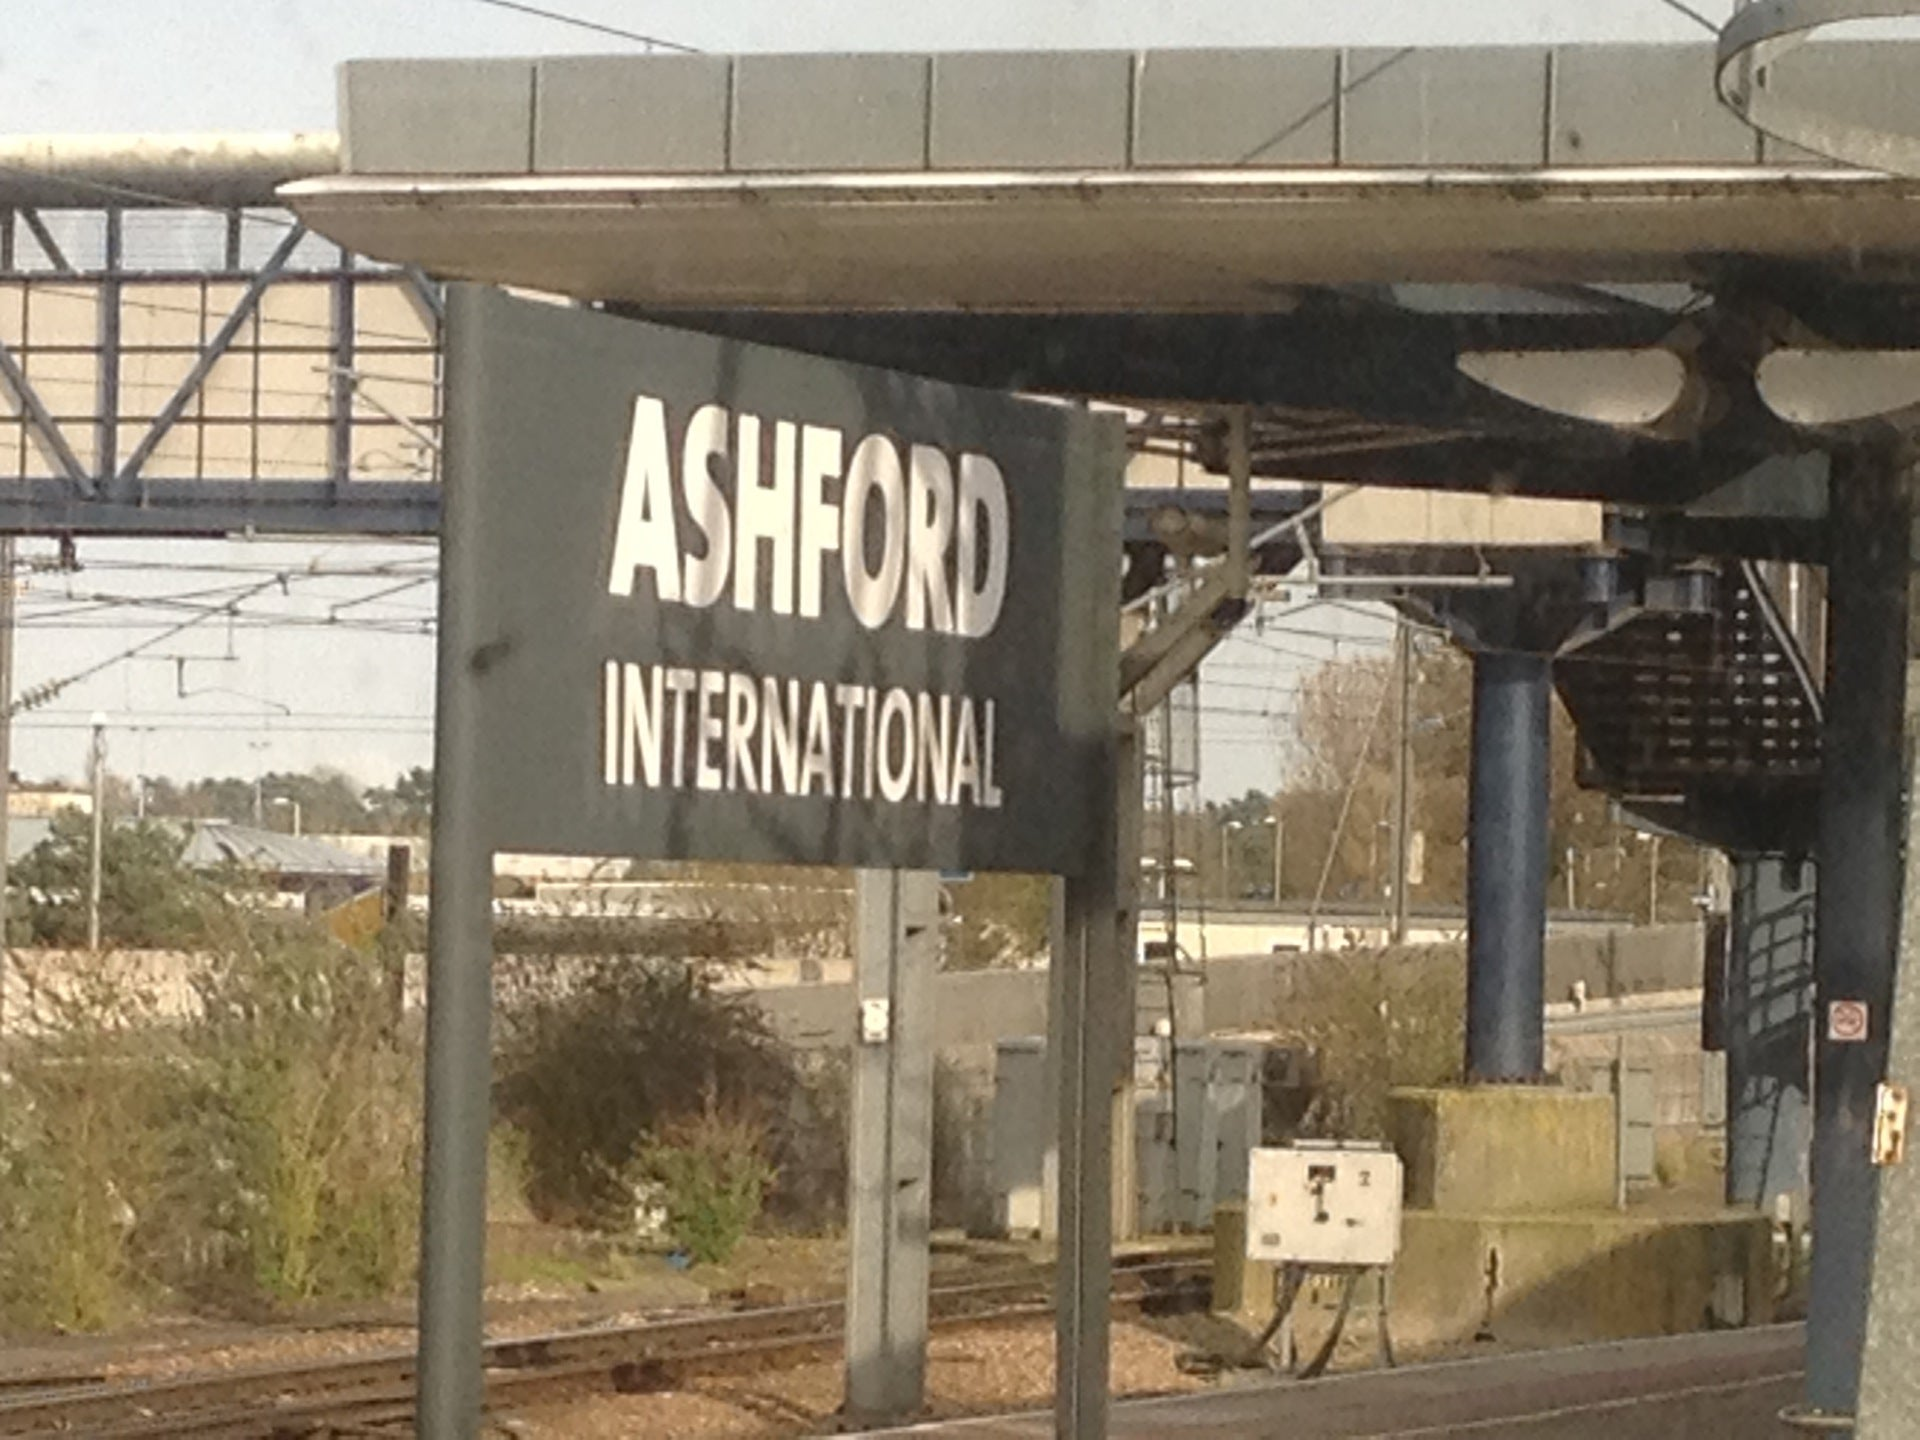 Gare d'Ashford International